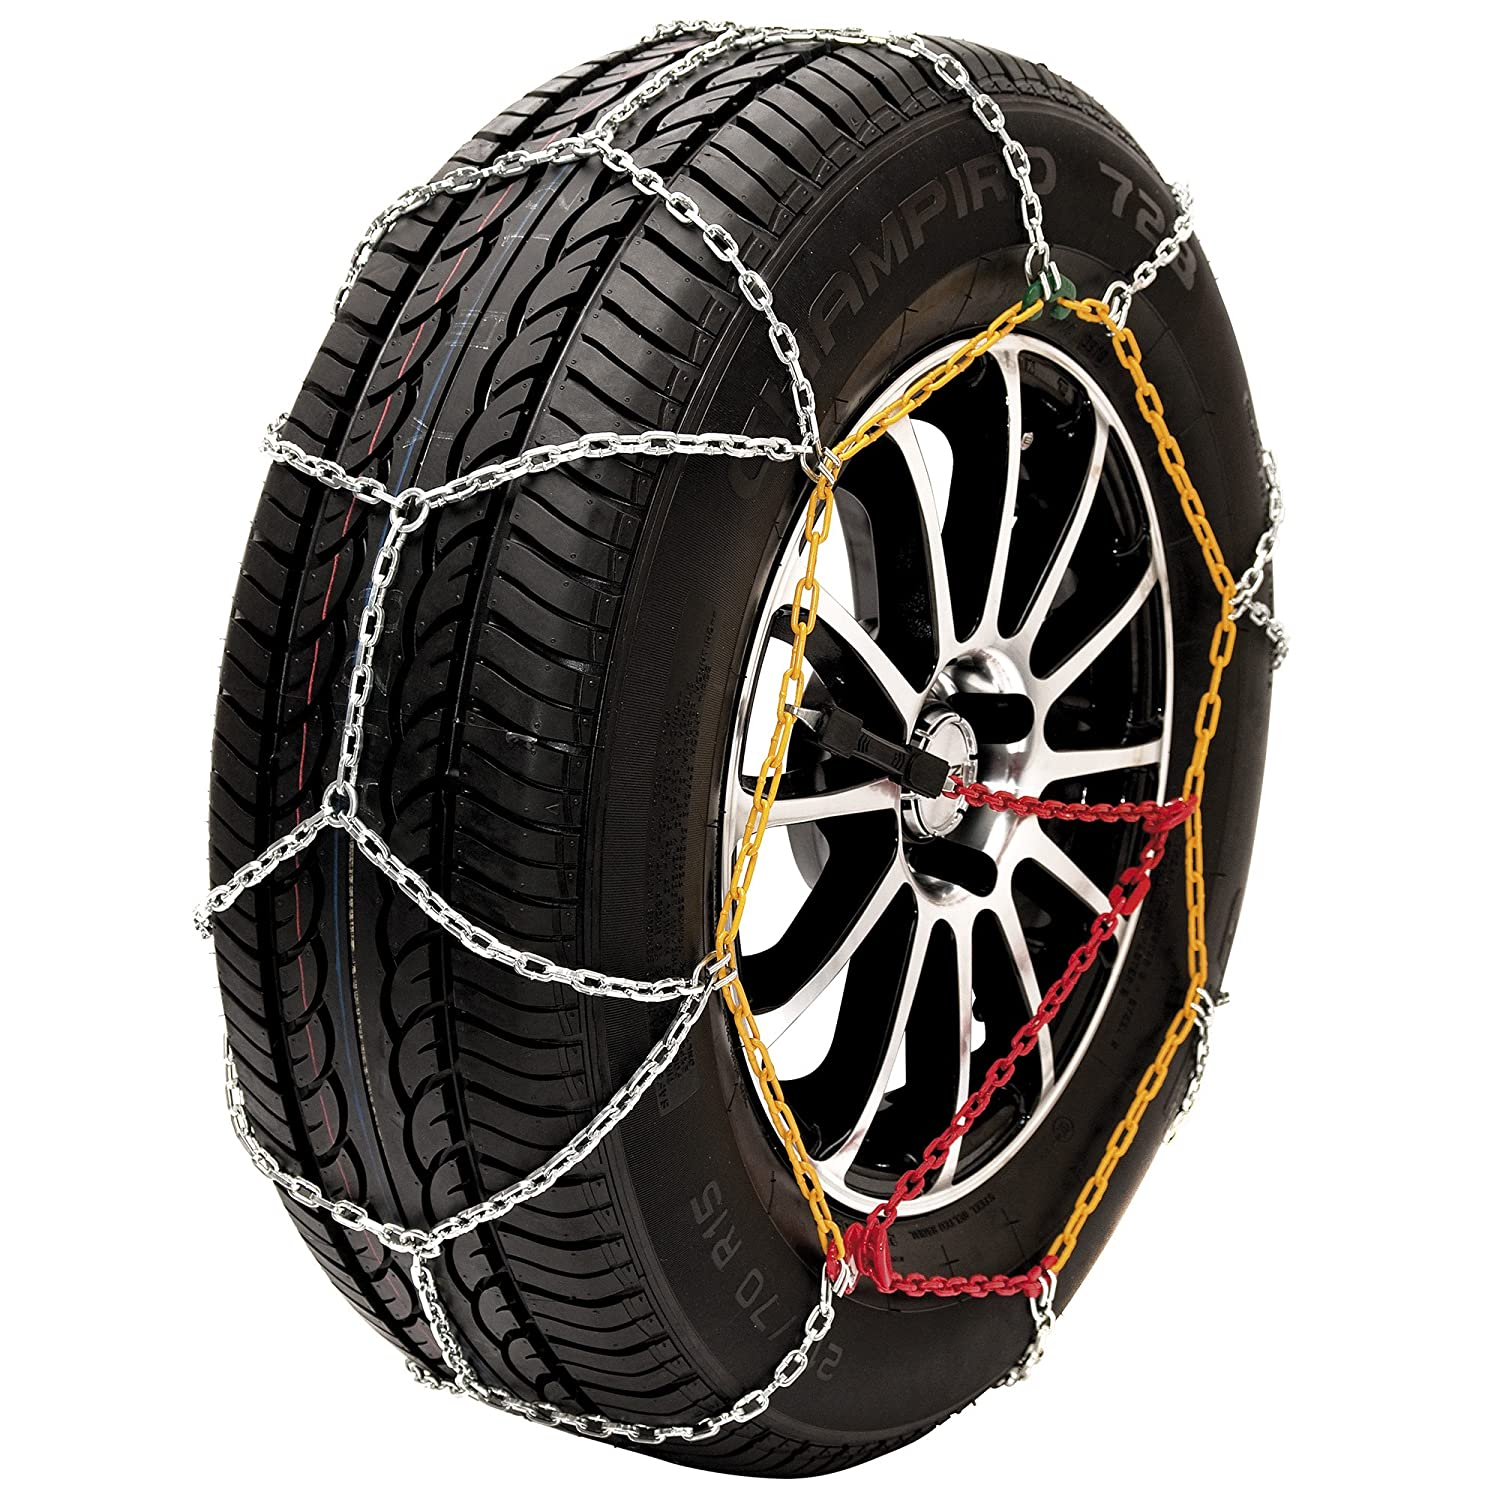 Sumex HUSAD80 KN80 Husky Advance Snow Chains 9 mm Sumex Italia S.R.L.